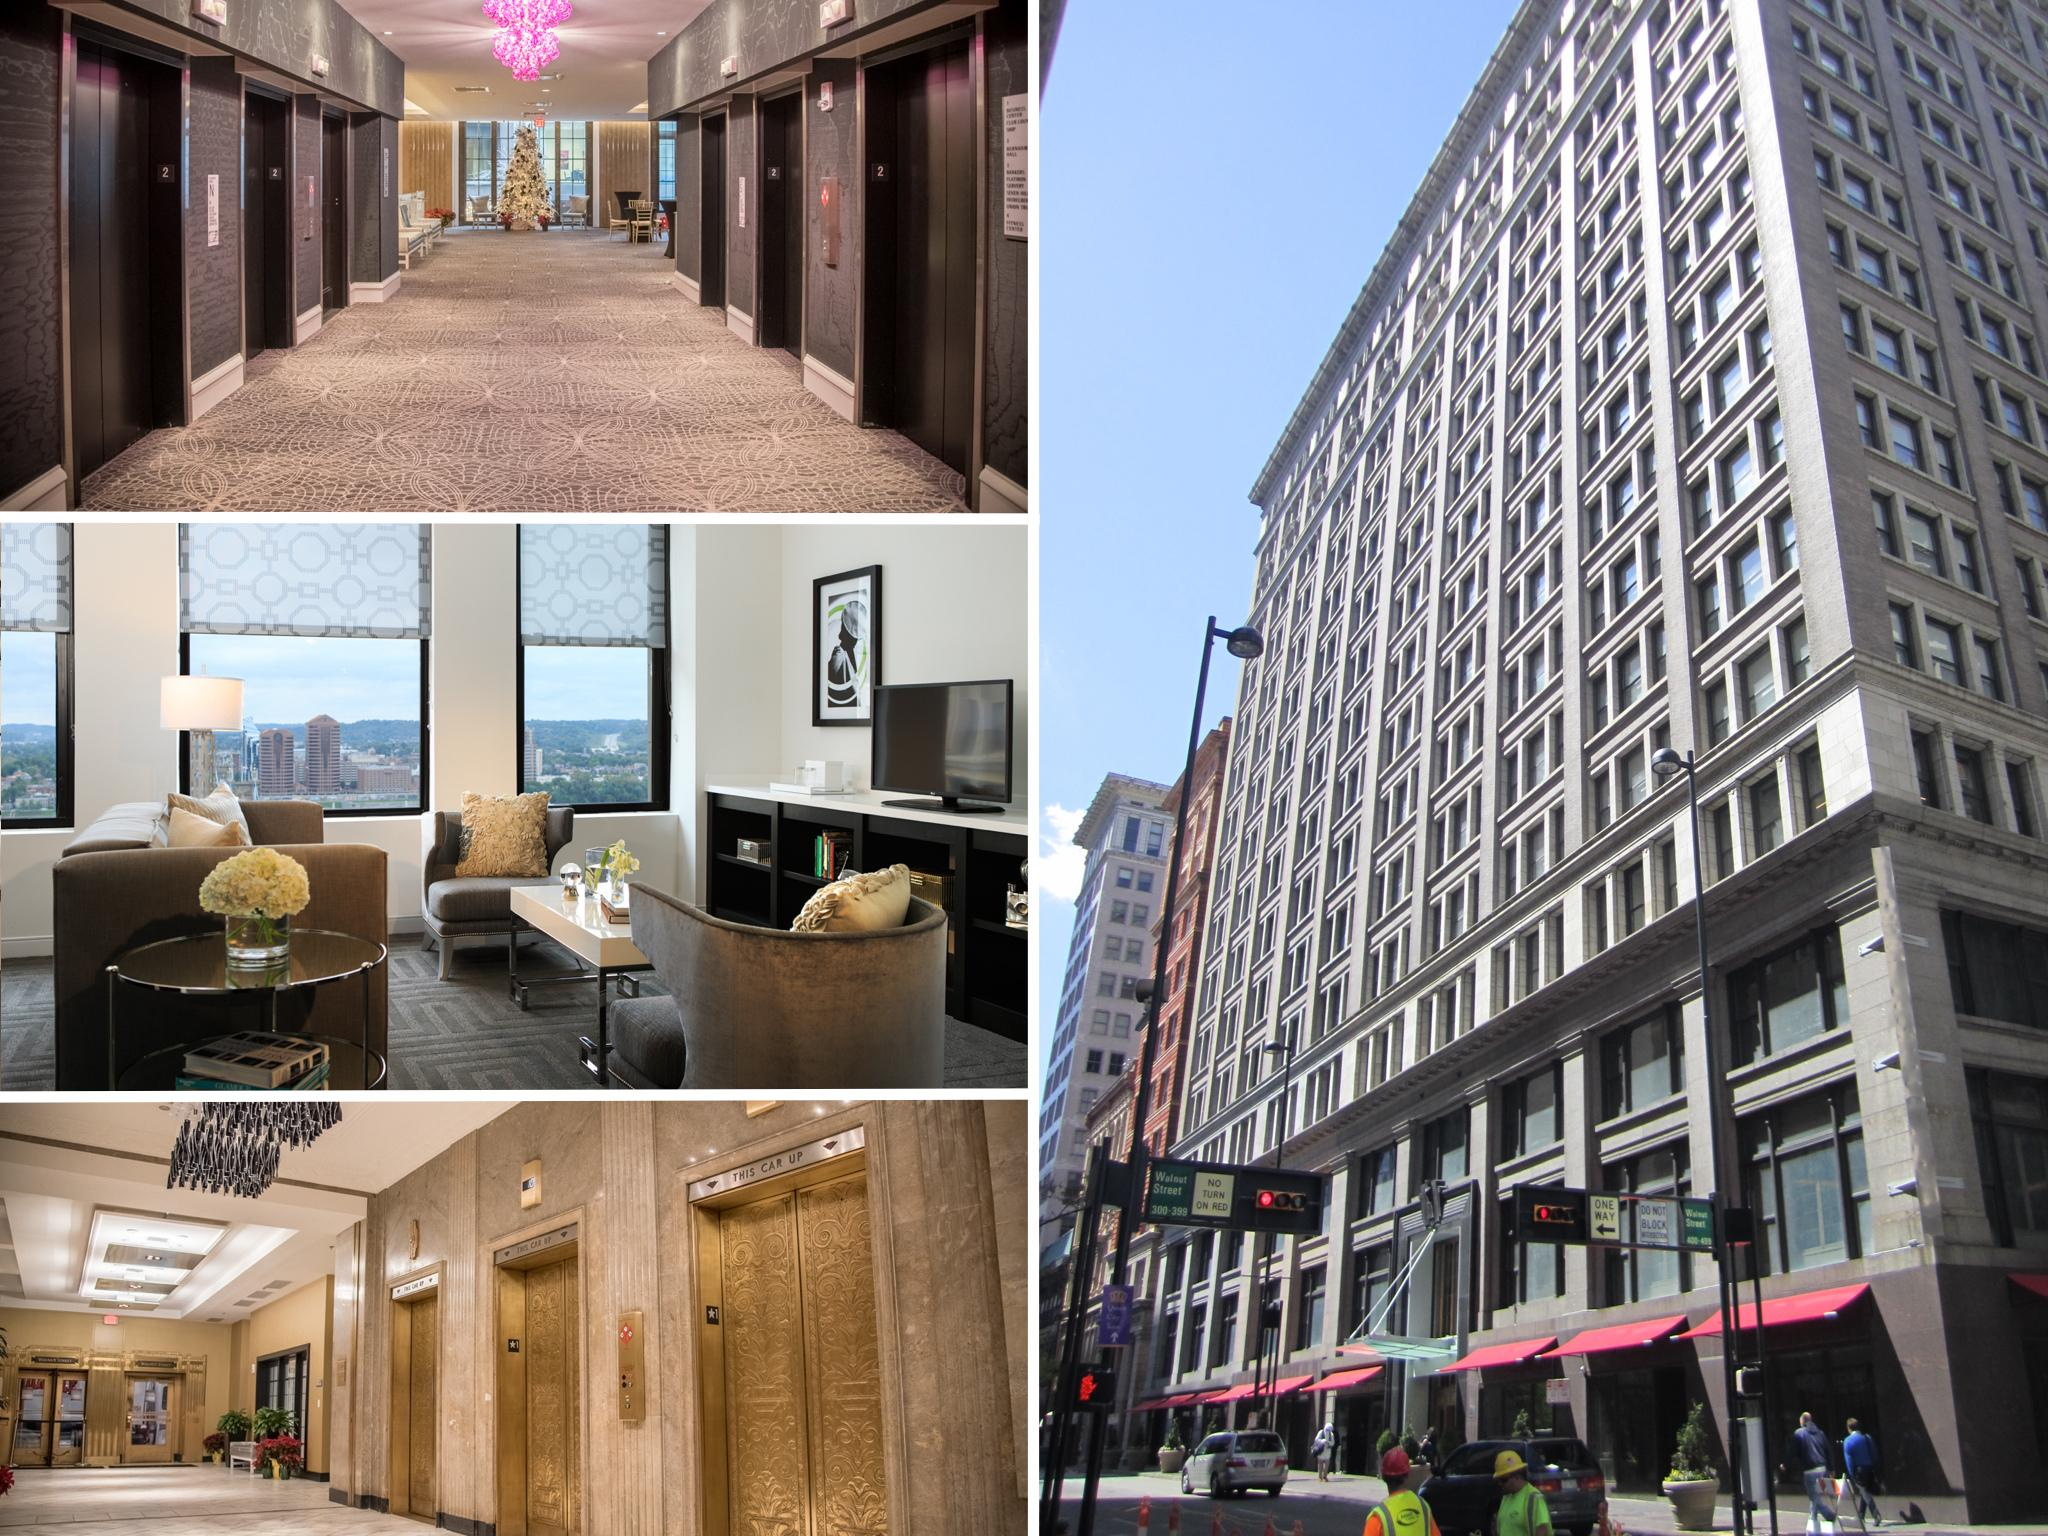 RENAISSANCE HOTEL (After) / ADDRESS: 36 E 4th Street (45202) / CREDIT: $5,000,000 / PREVIOUSLY: Union Trust Building / Images: Phil Armstrong